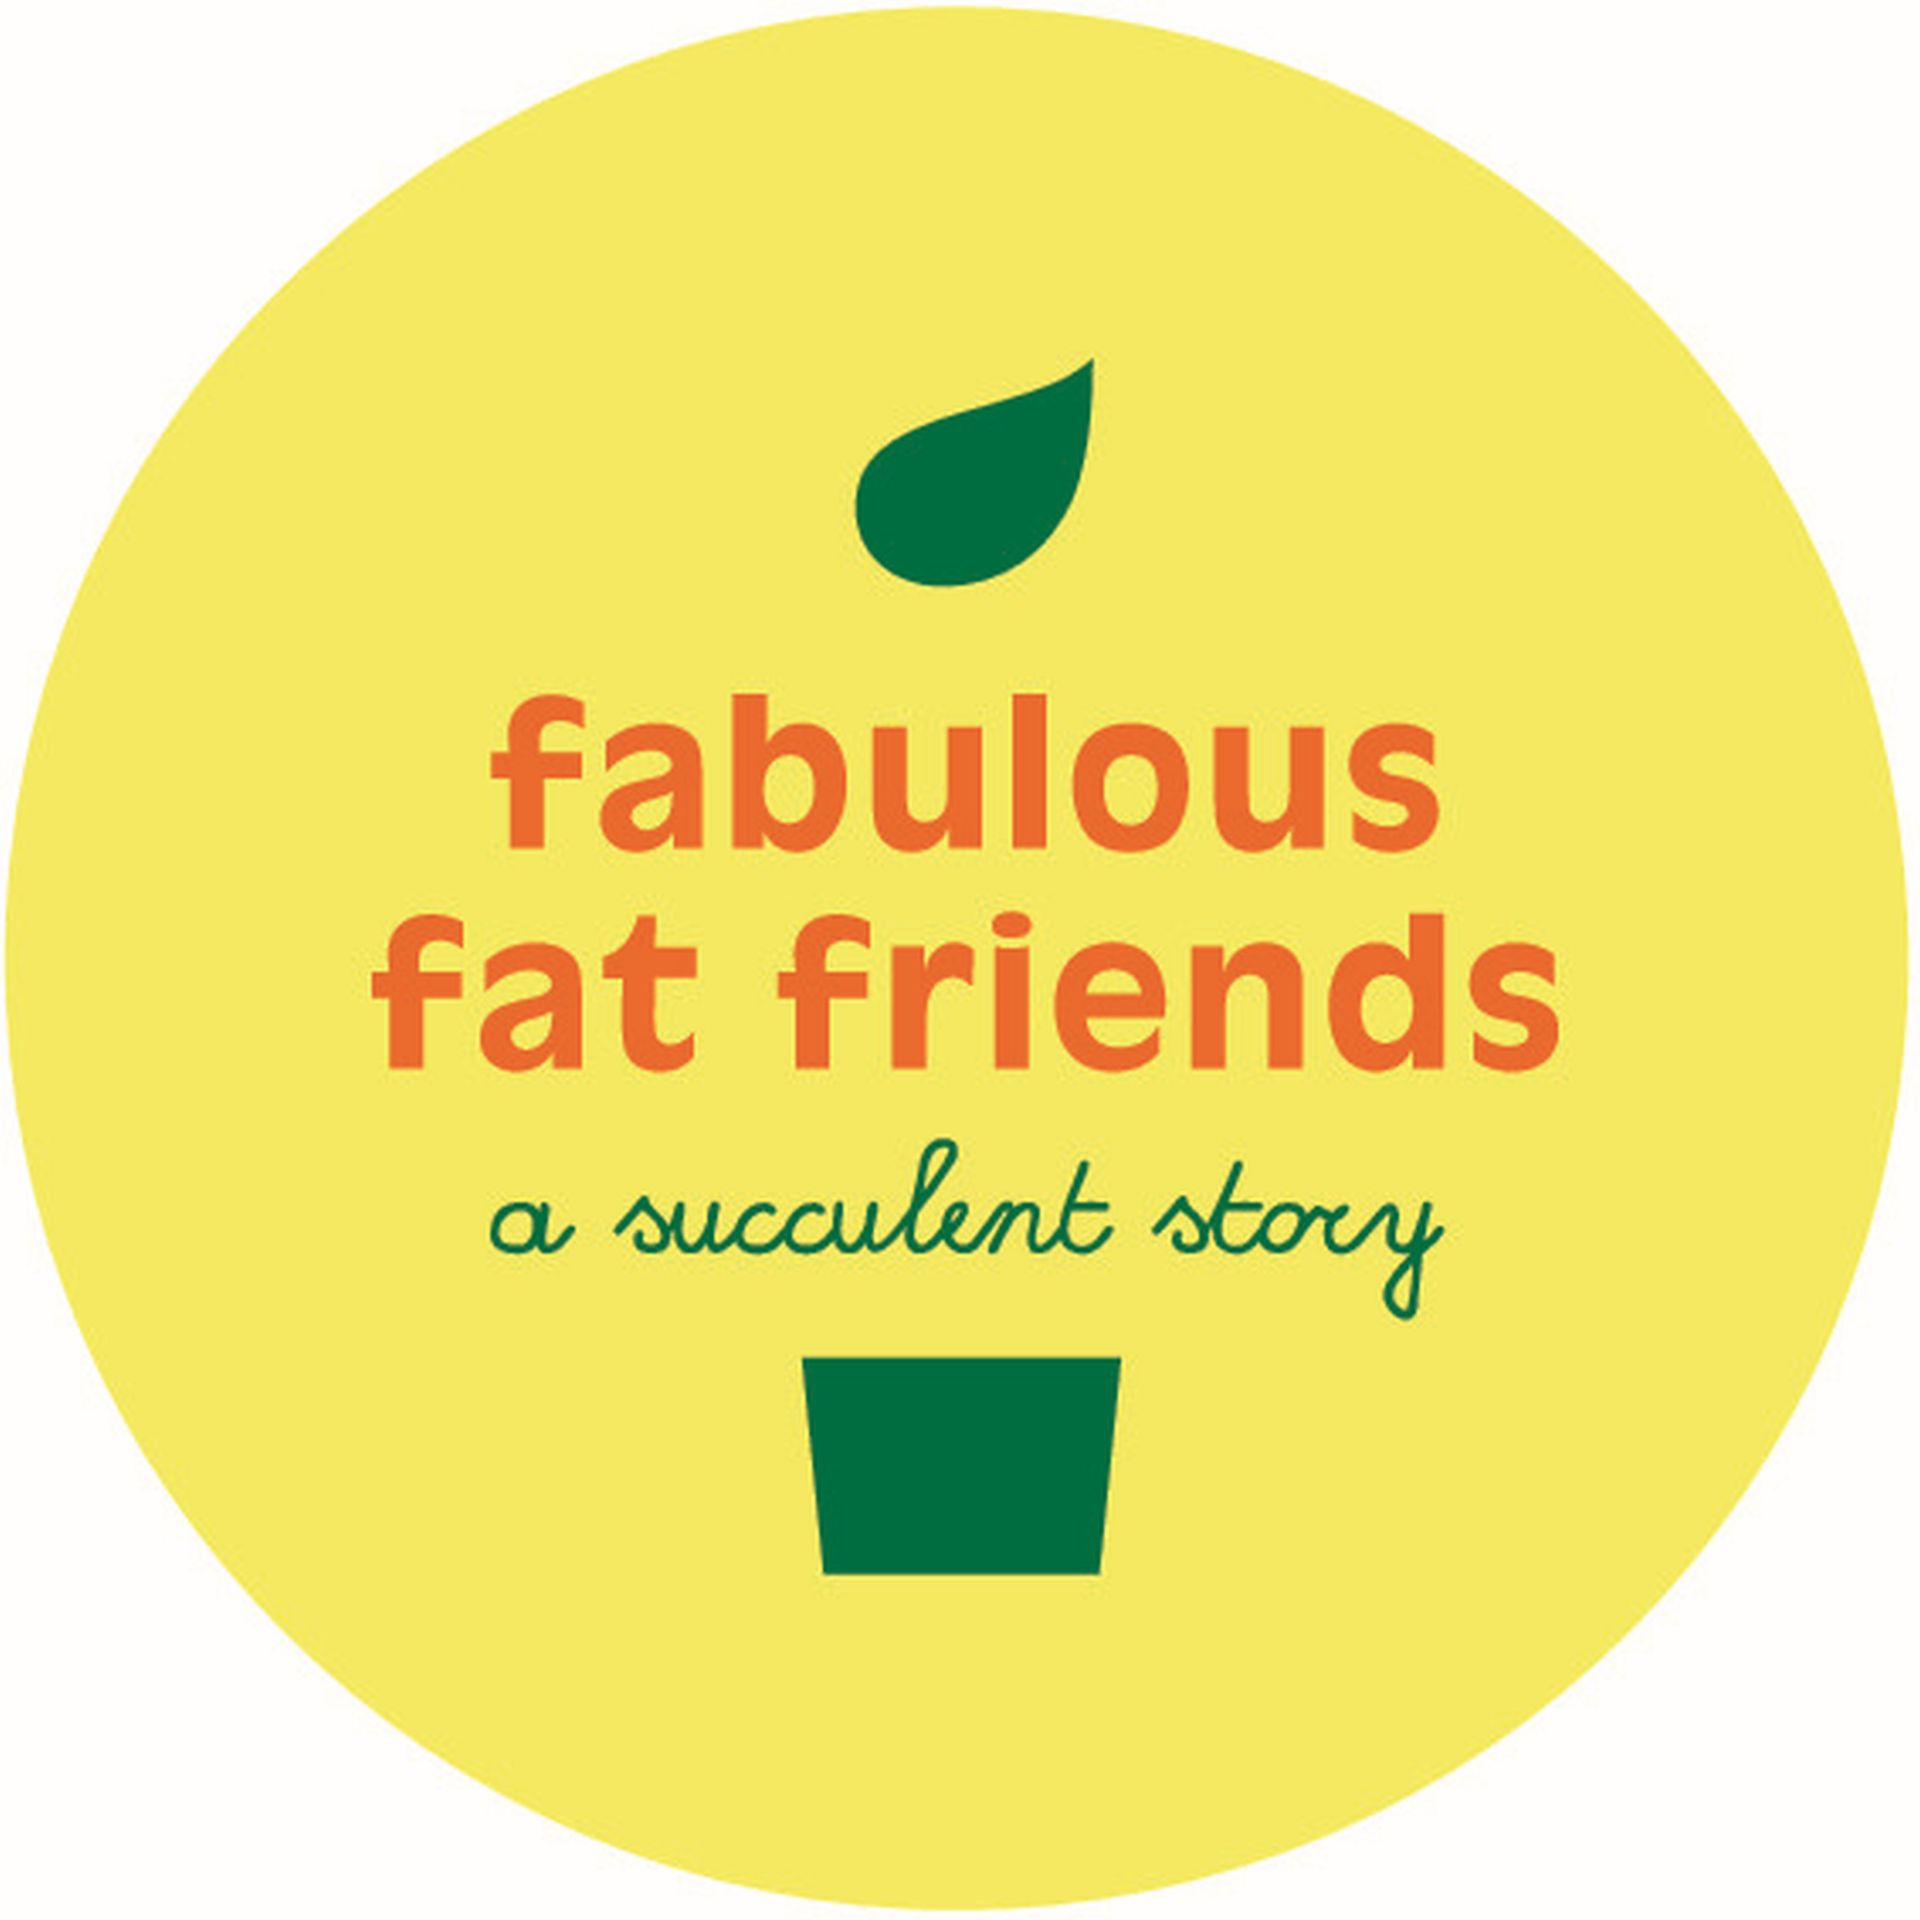 Belgicactus bv - Fabulous fat friends